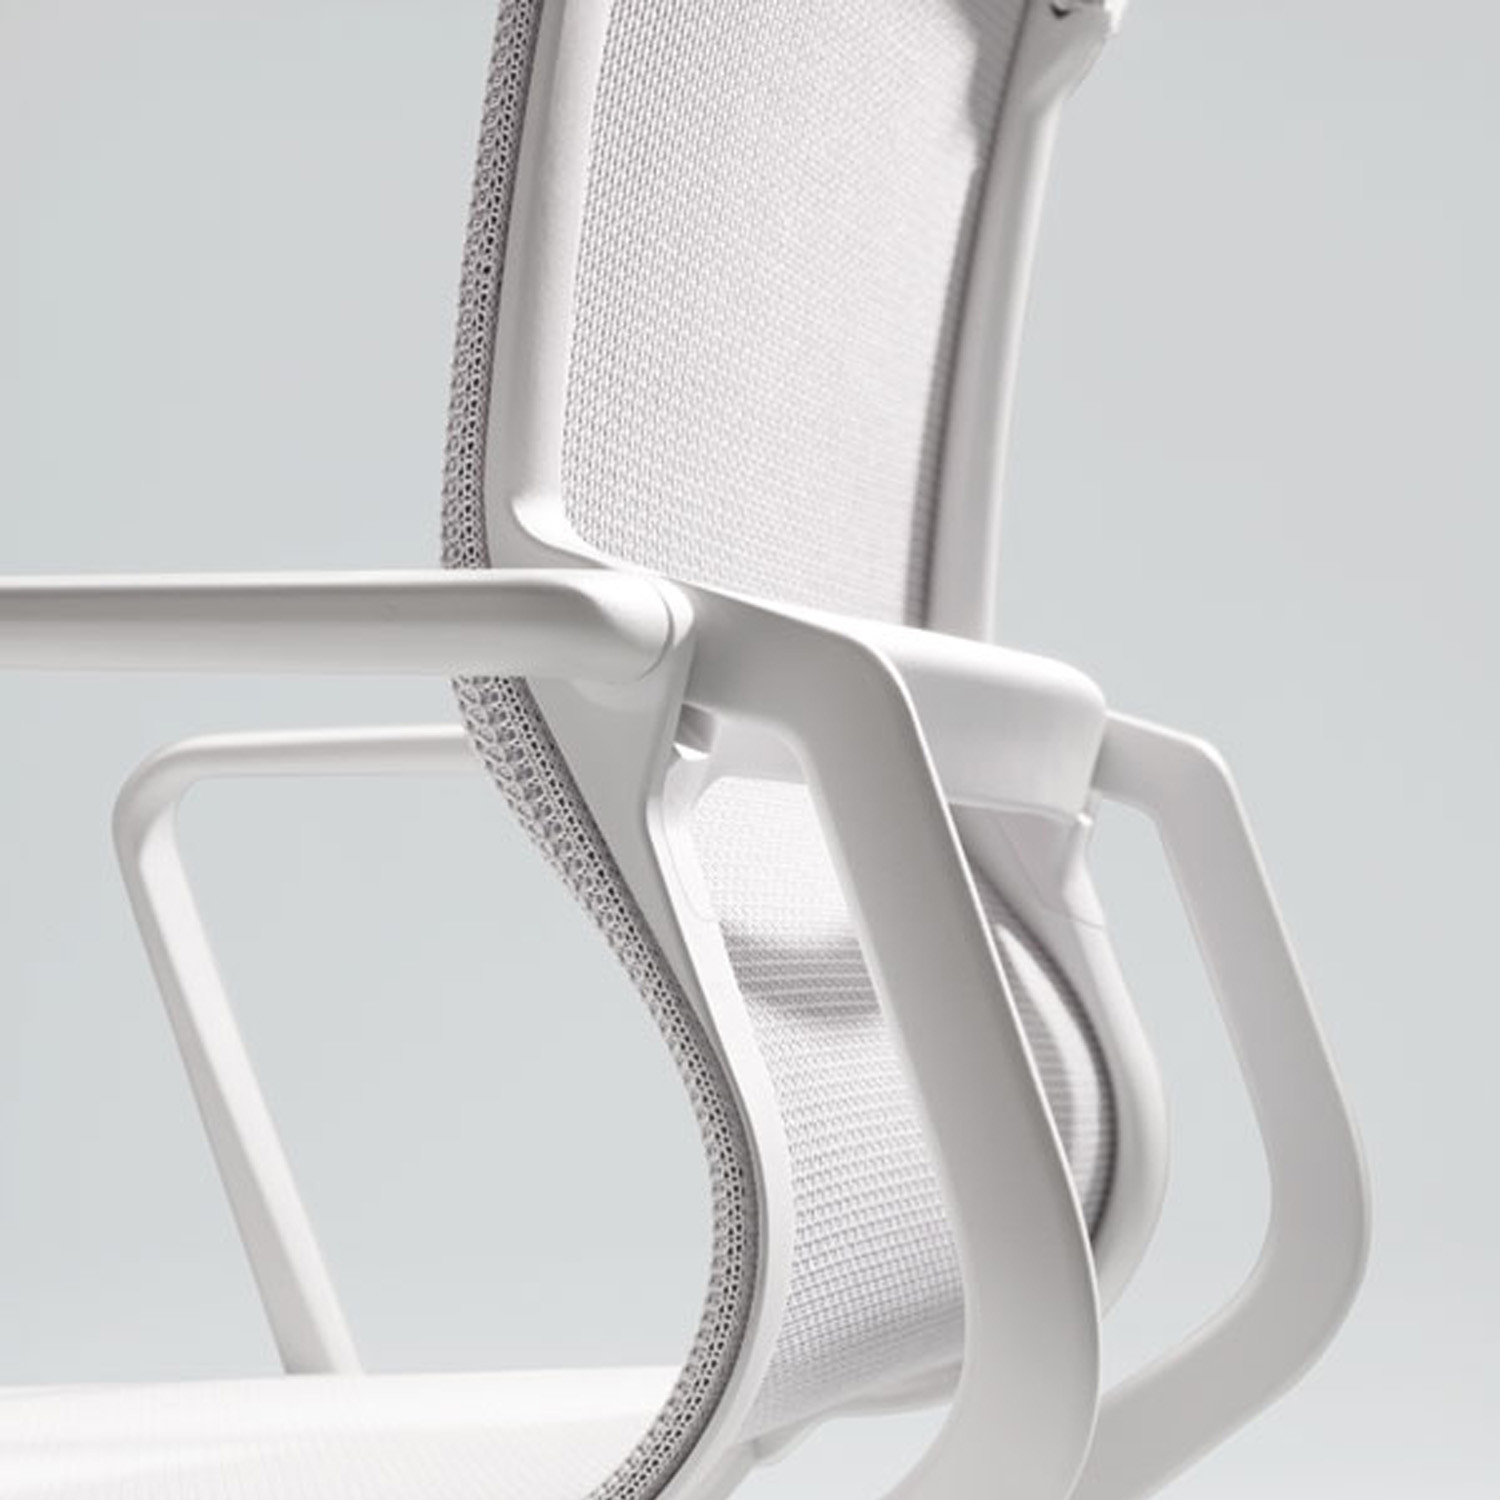 Physix Chair Backrest Detail from Vitra